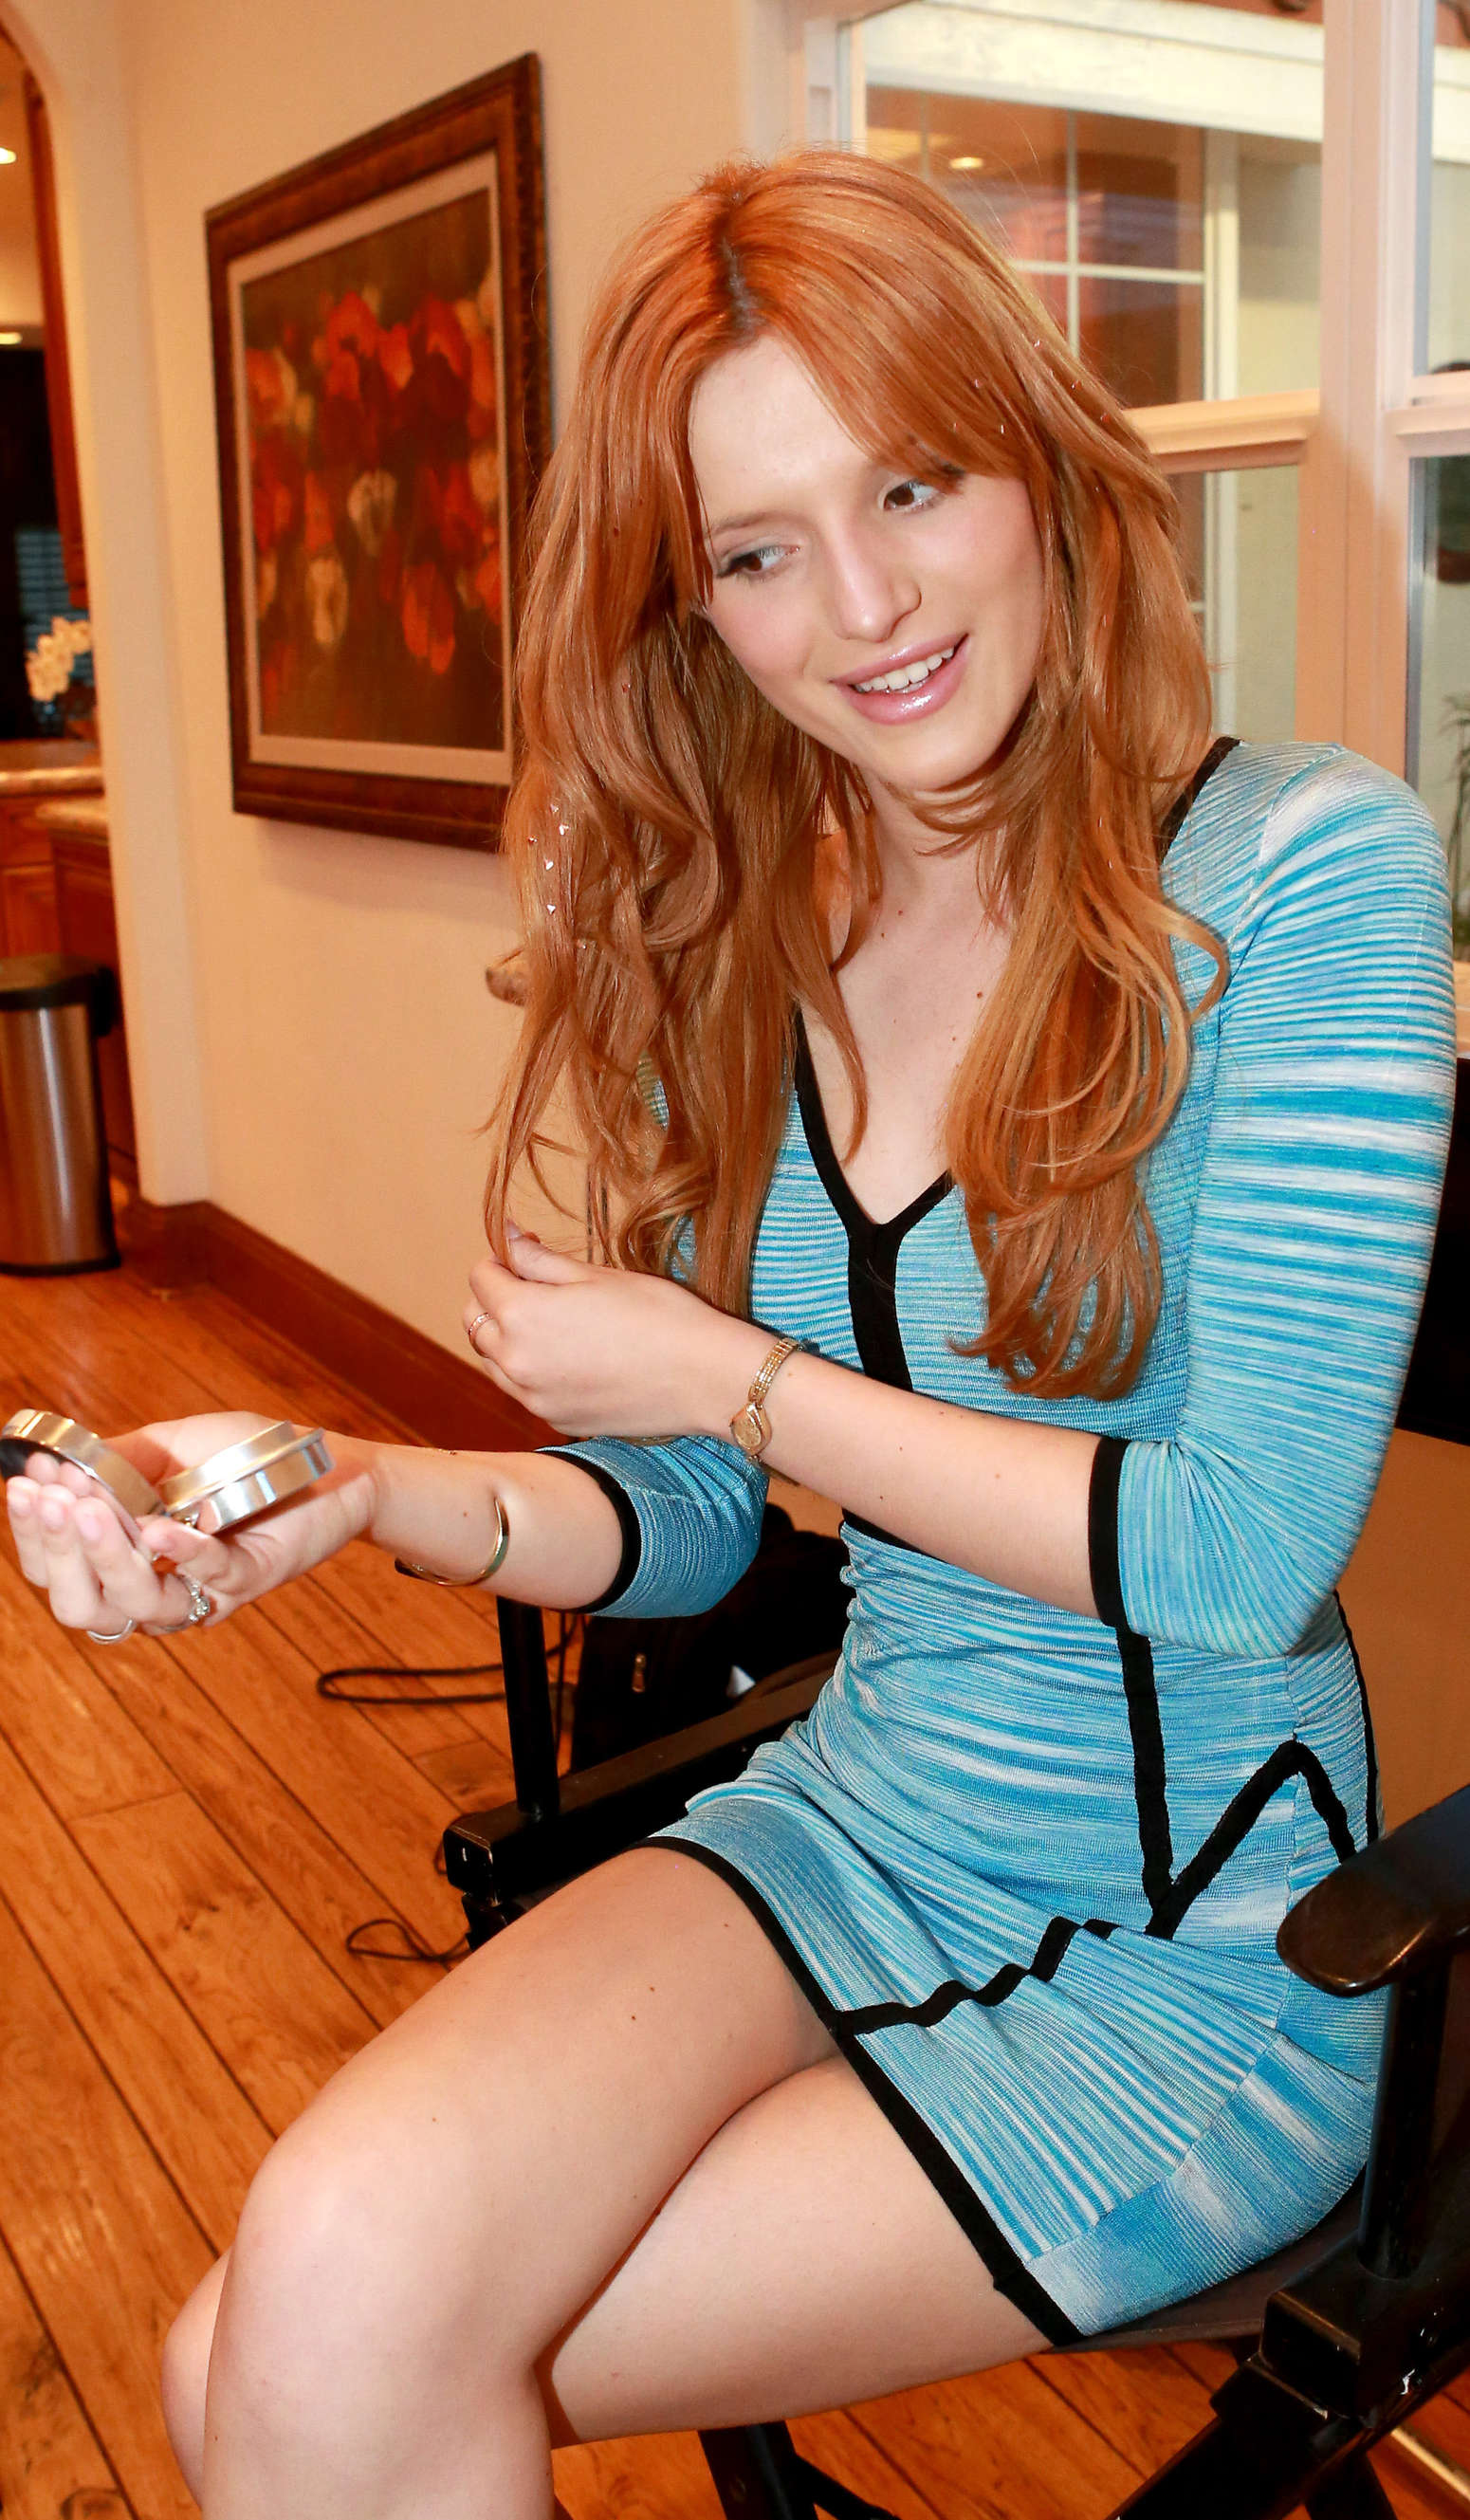 Bella Thorne Photoshoot At Home -14